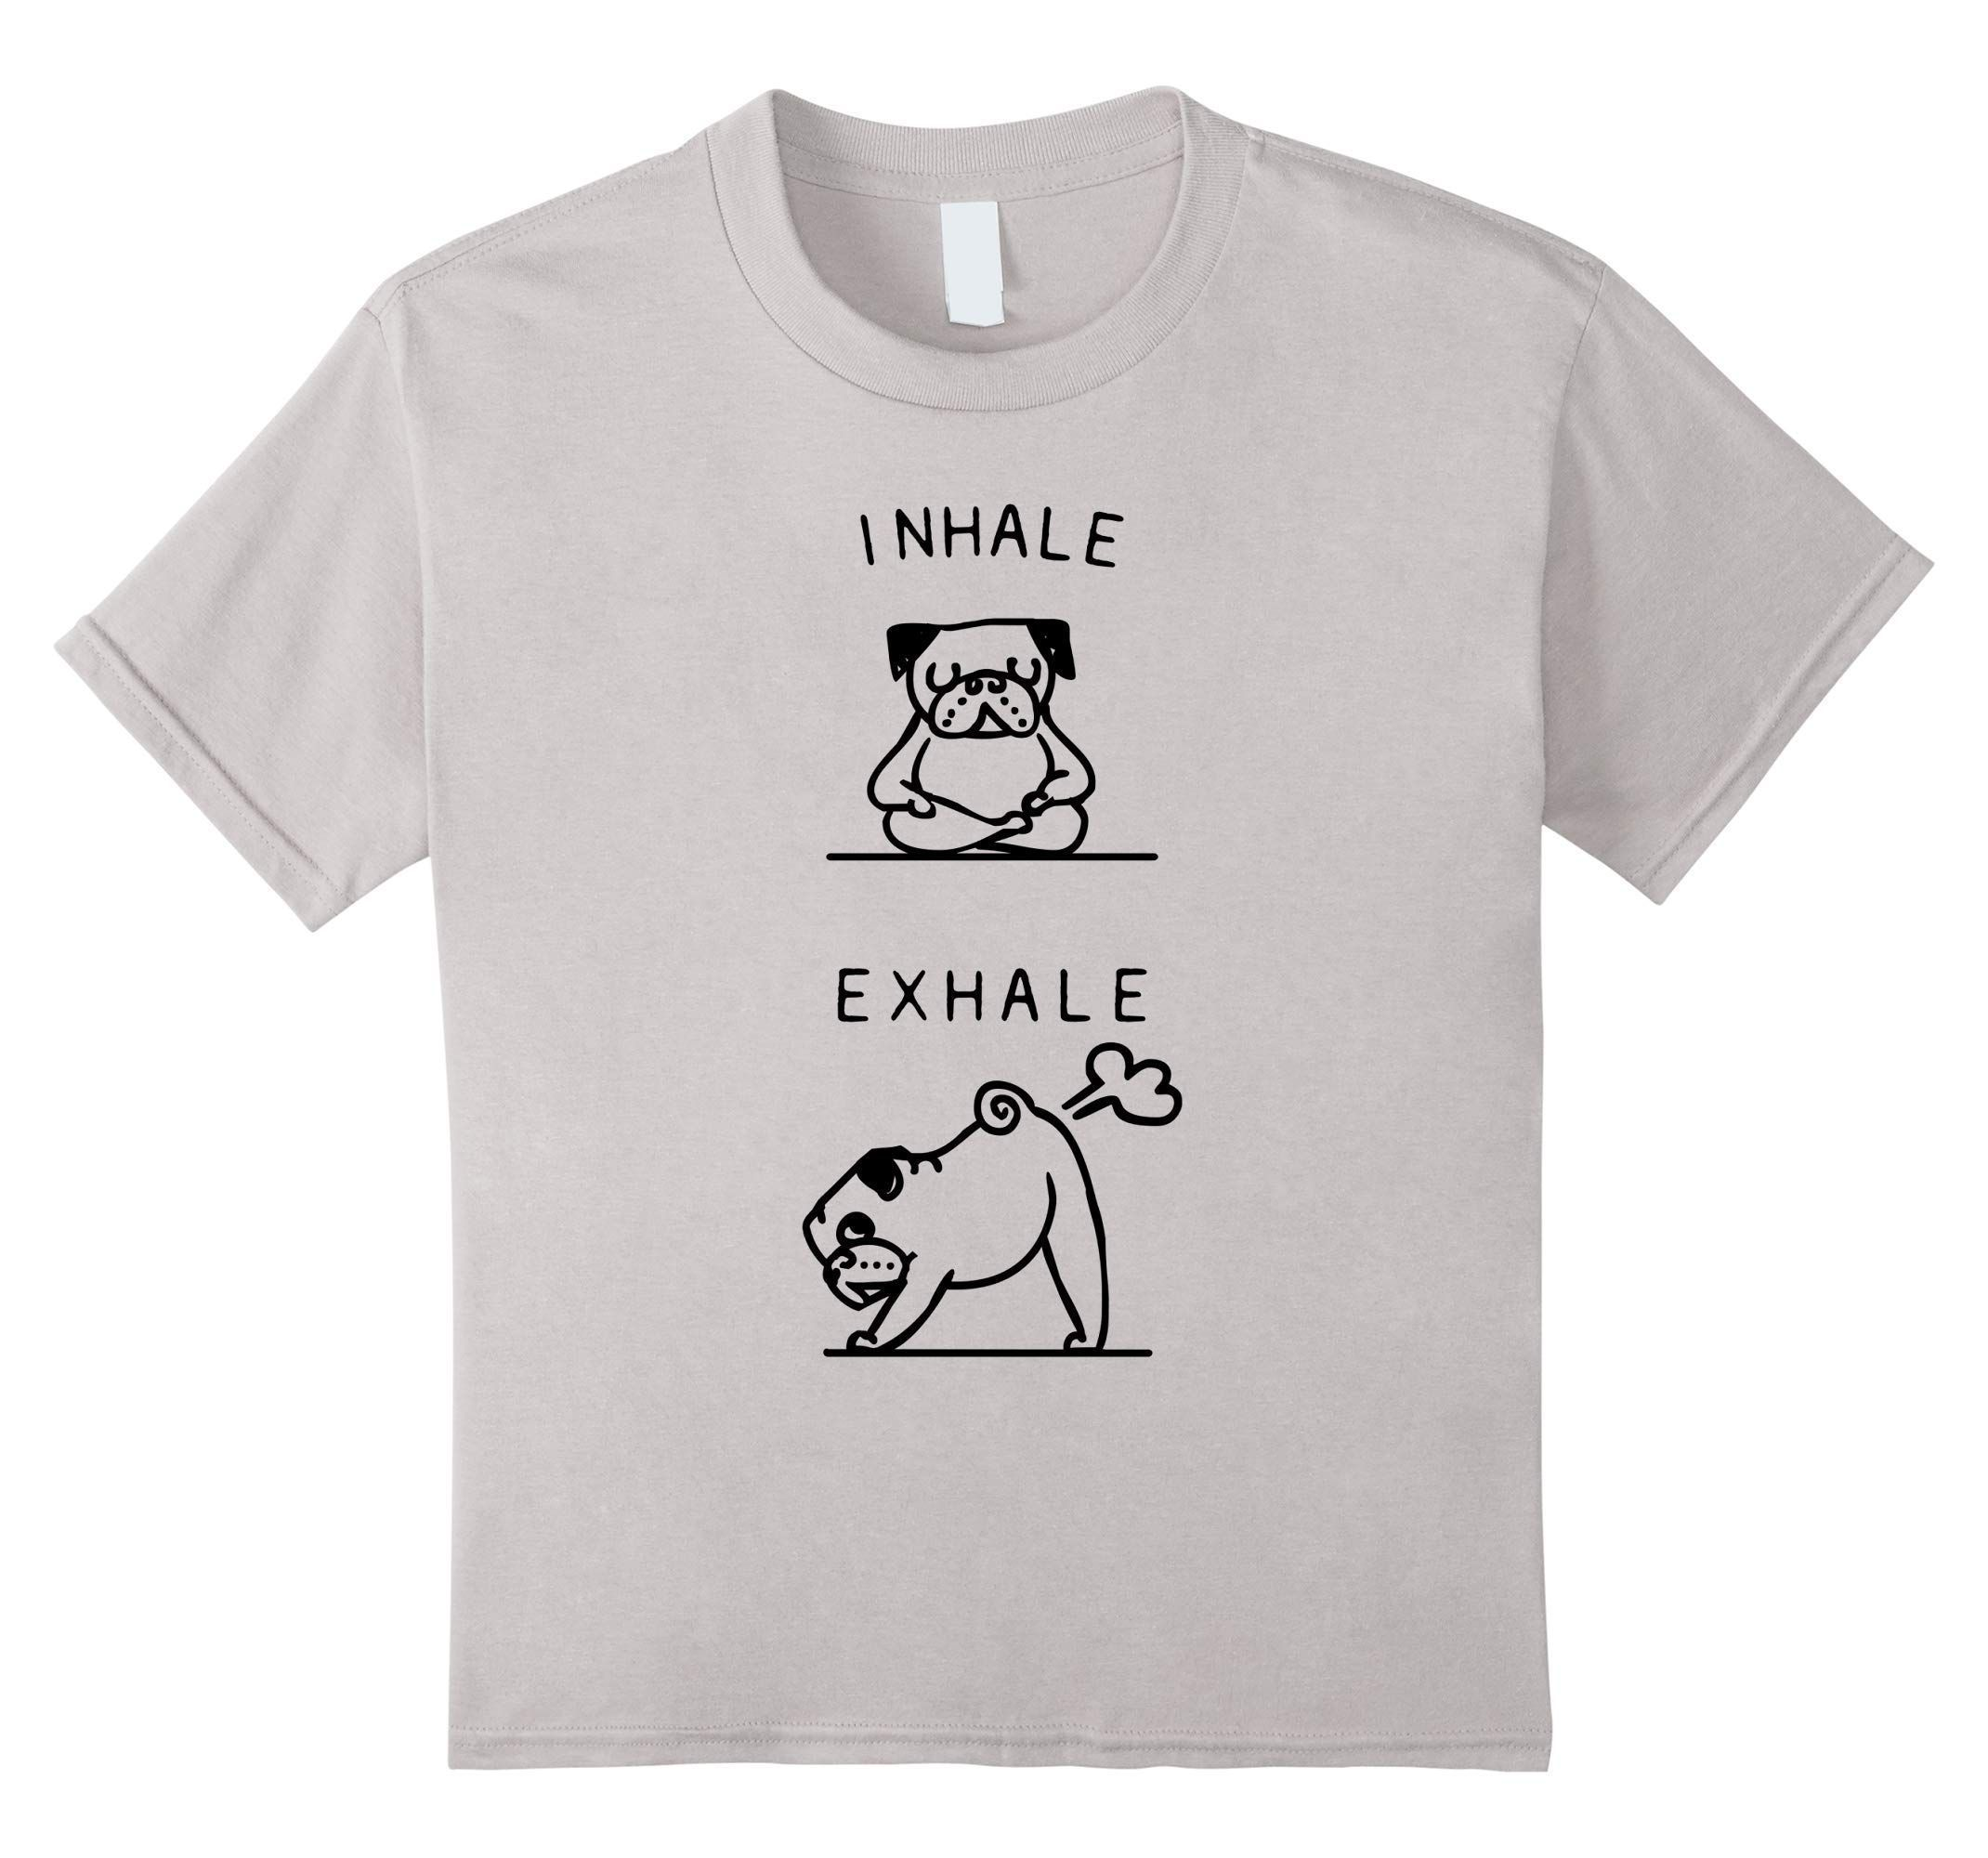 Inhale Exhale Funny shirt Huebucket-Tovacu #inhaleexhale Inhale Exhale Funny shirt Huebucket-Tovacu #inhaleexhale Inhale Exhale Funny shirt Huebucket-Tovacu #inhaleexhale Inhale Exhale Funny shirt Huebucket-Tovacu #inhaleexhale Inhale Exhale Funny shirt Huebucket-Tovacu #inhaleexhale Inhale Exhale Funny shirt Huebucket-Tovacu #inhaleexhale Inhale Exhale Funny shirt Huebucket-Tovacu #inhaleexhale Inhale Exhale Funny shirt Huebucket-Tovacu #inhaleexhale